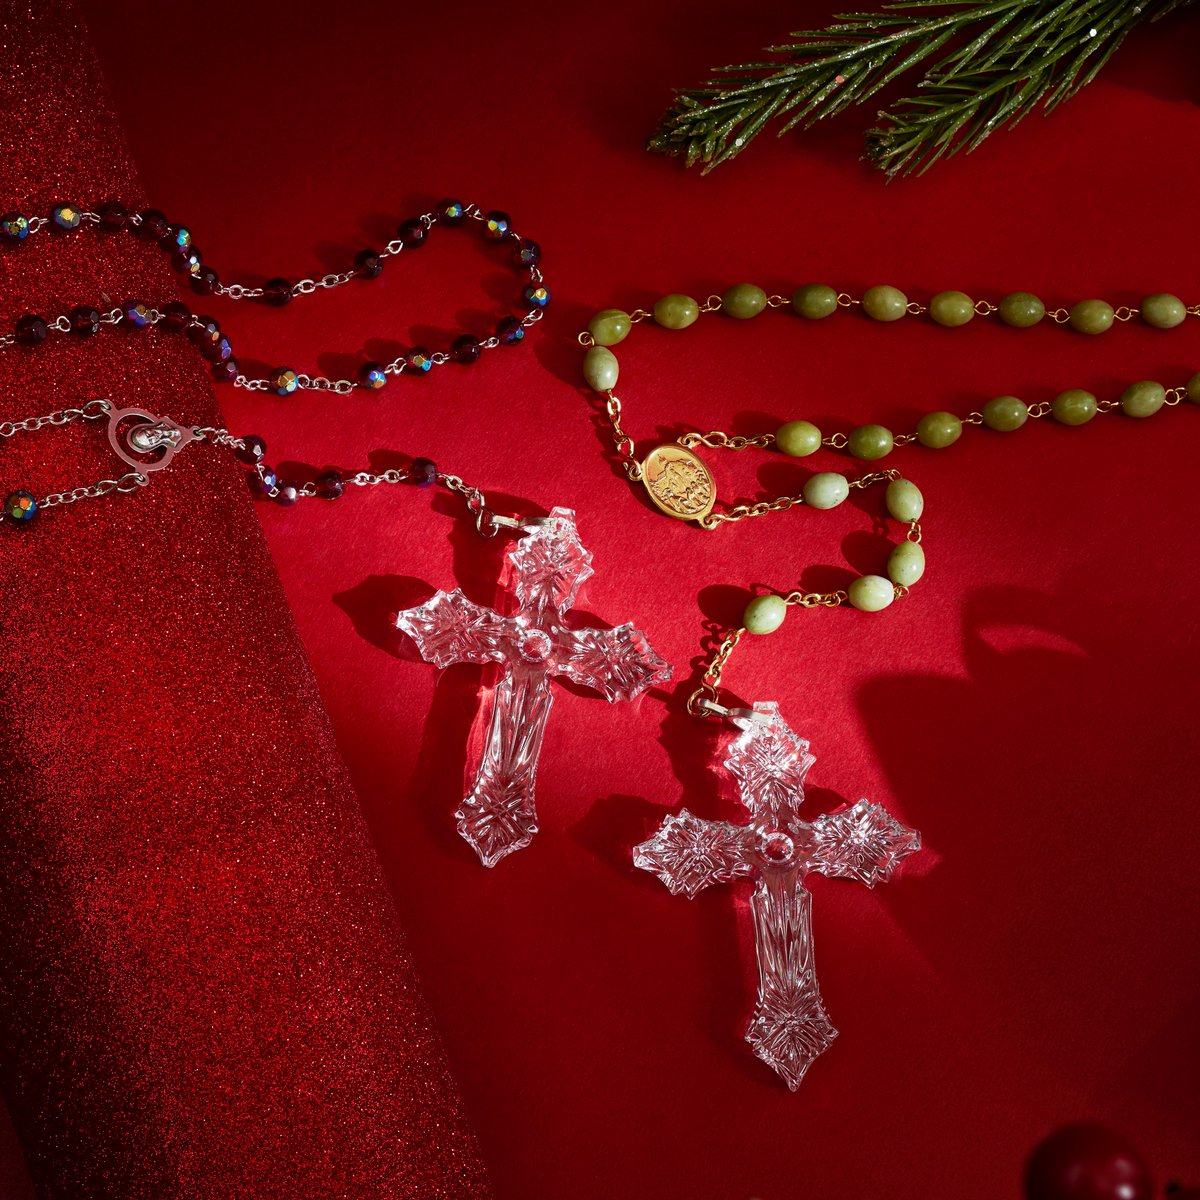 Display your faith with this religious accessory! Crafted with beautifully cut crystal, this necklace features a rosary design on either green or red Connemara Marble beaded chain. Get this faith-inspired piece for 6 ValuePay® of $13.23! ✨